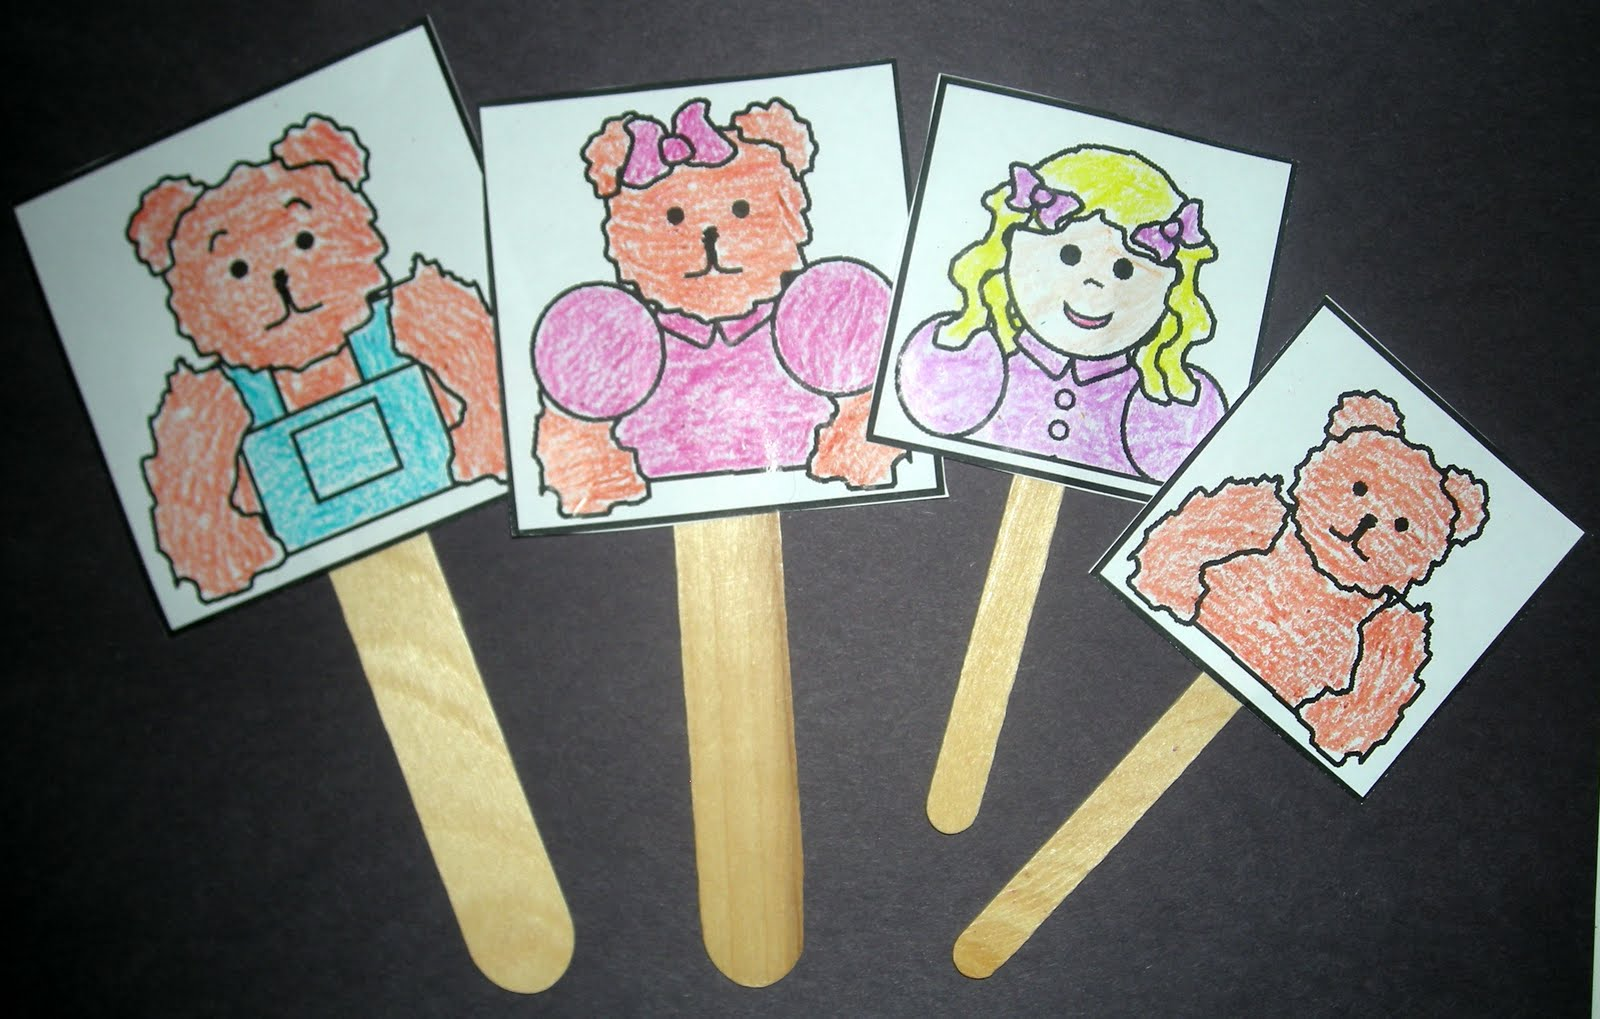 bears-preschool-crafts Images - Frompo - 1